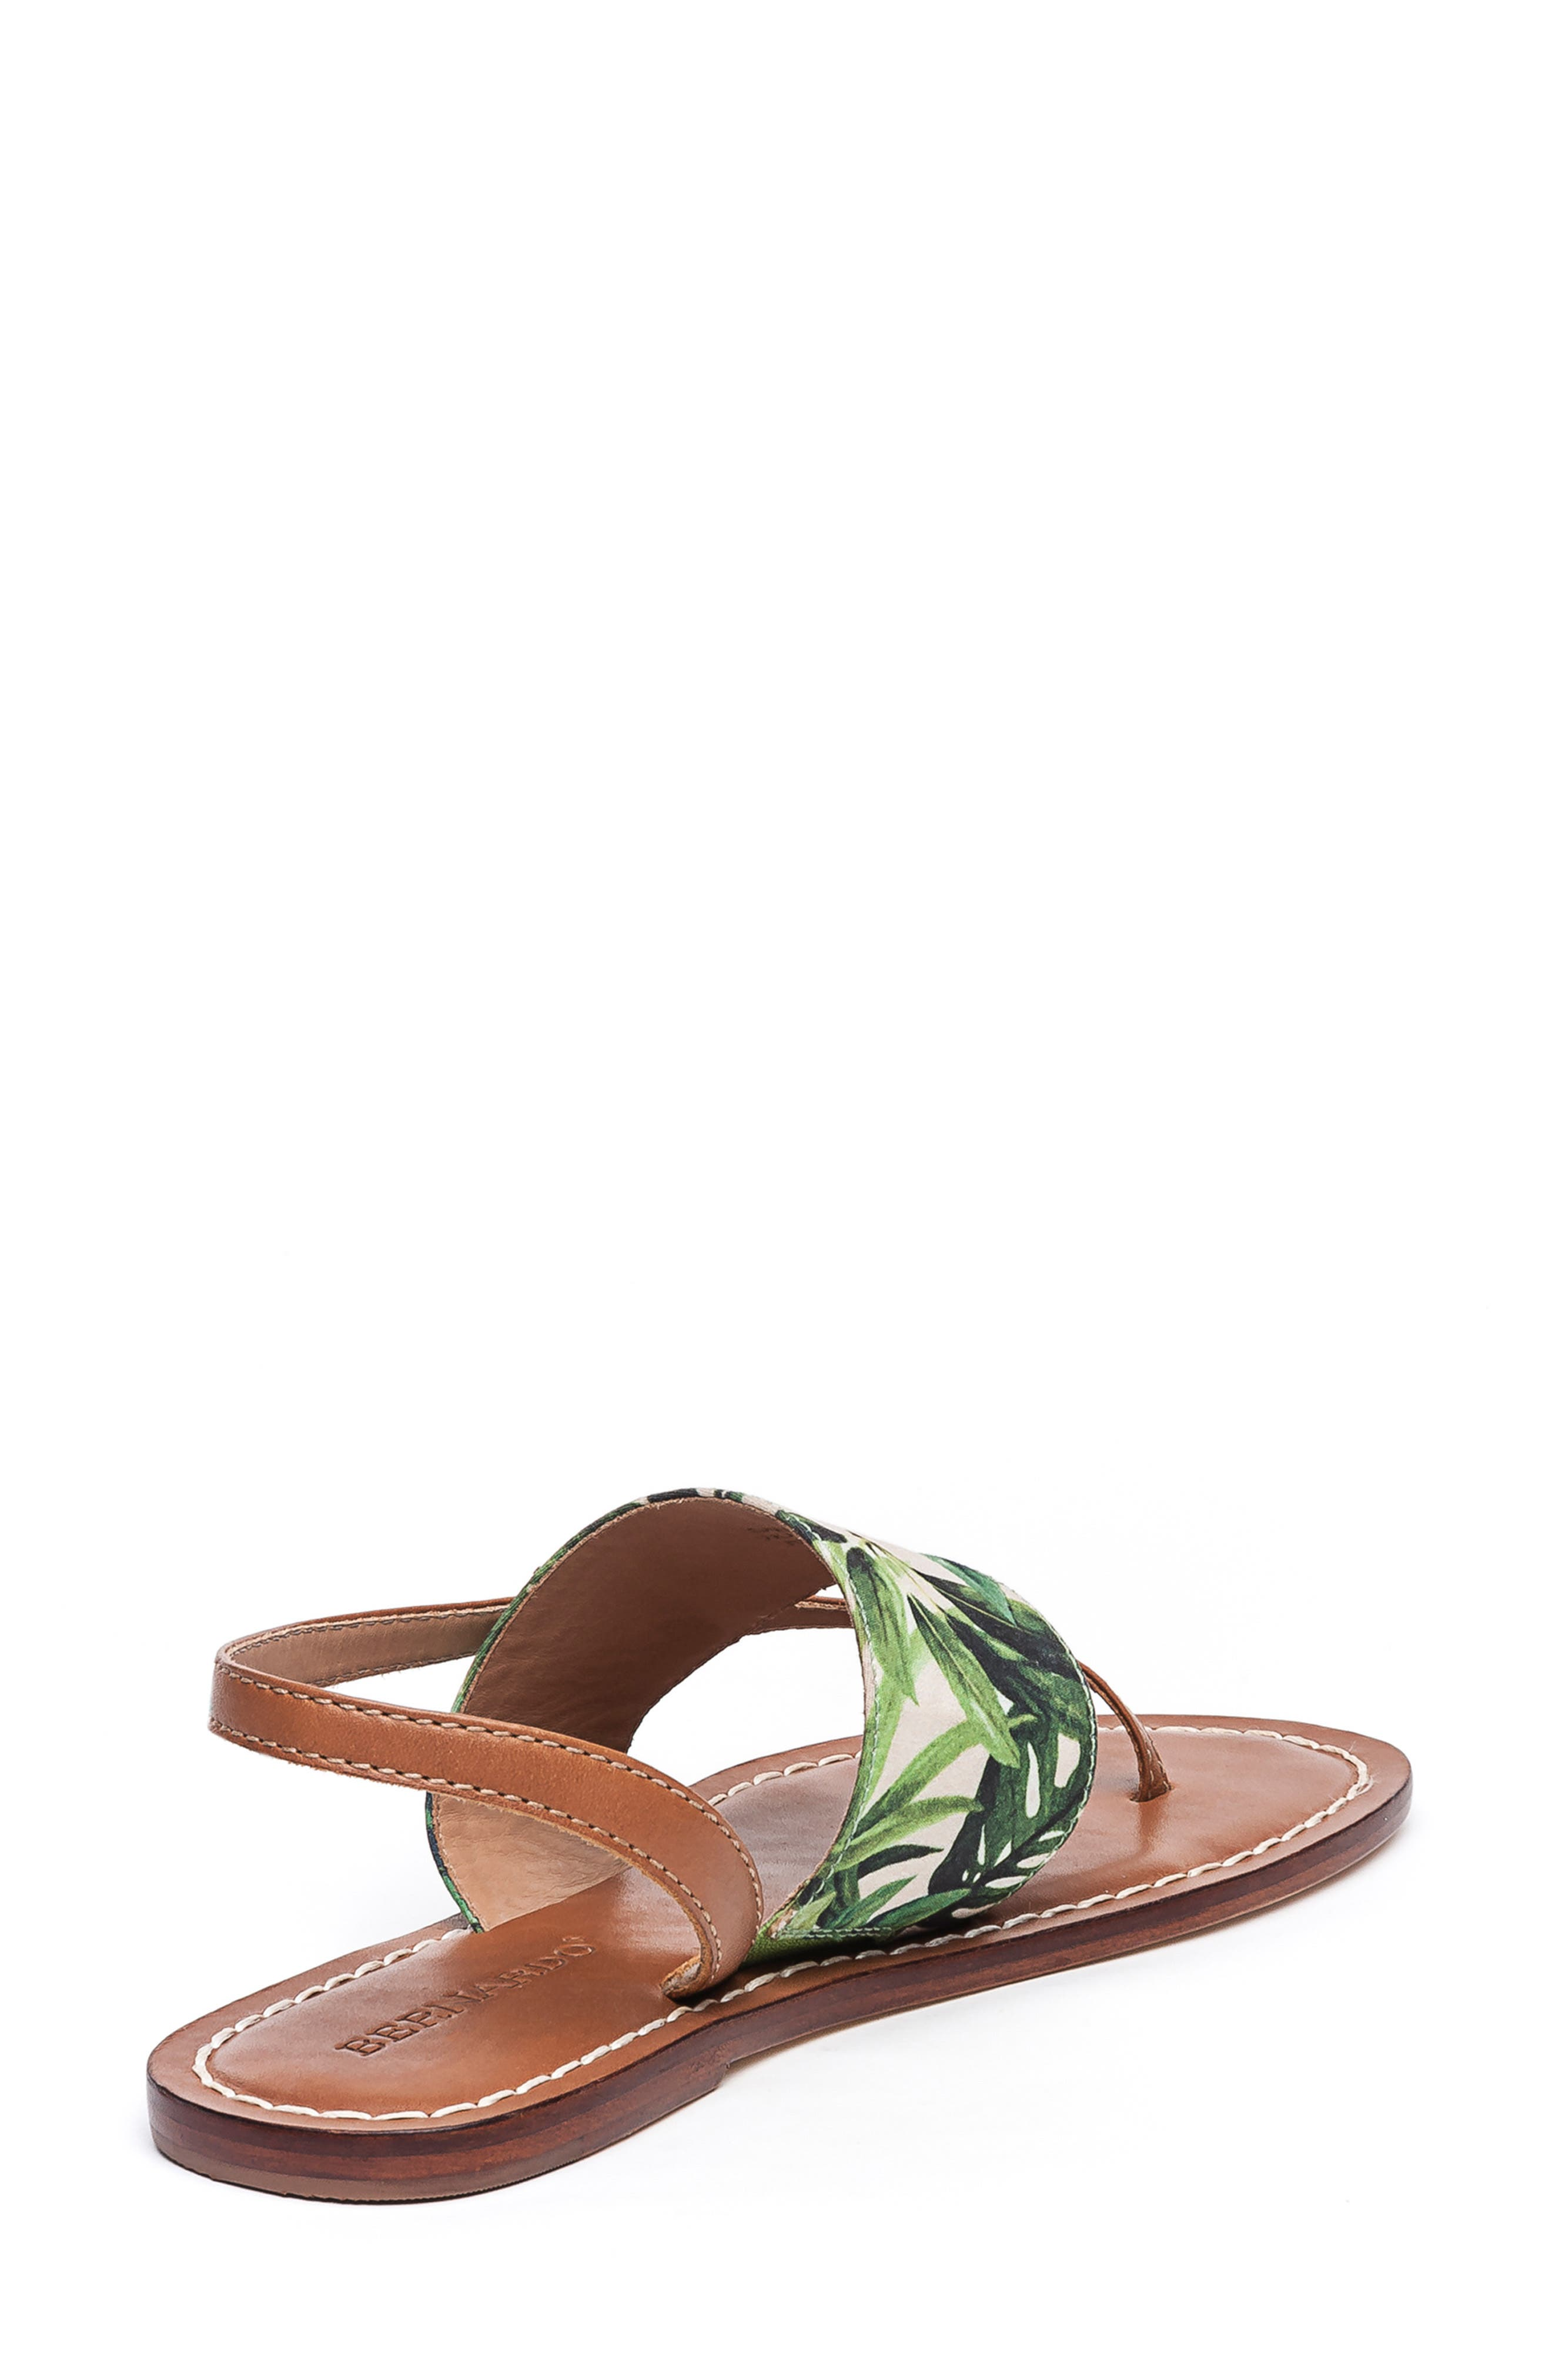 BERNARDO, Footwear Meg Thong Sandal, Alternate thumbnail 2, color, PALM FABRIC/ LUGGAGE LEATHER